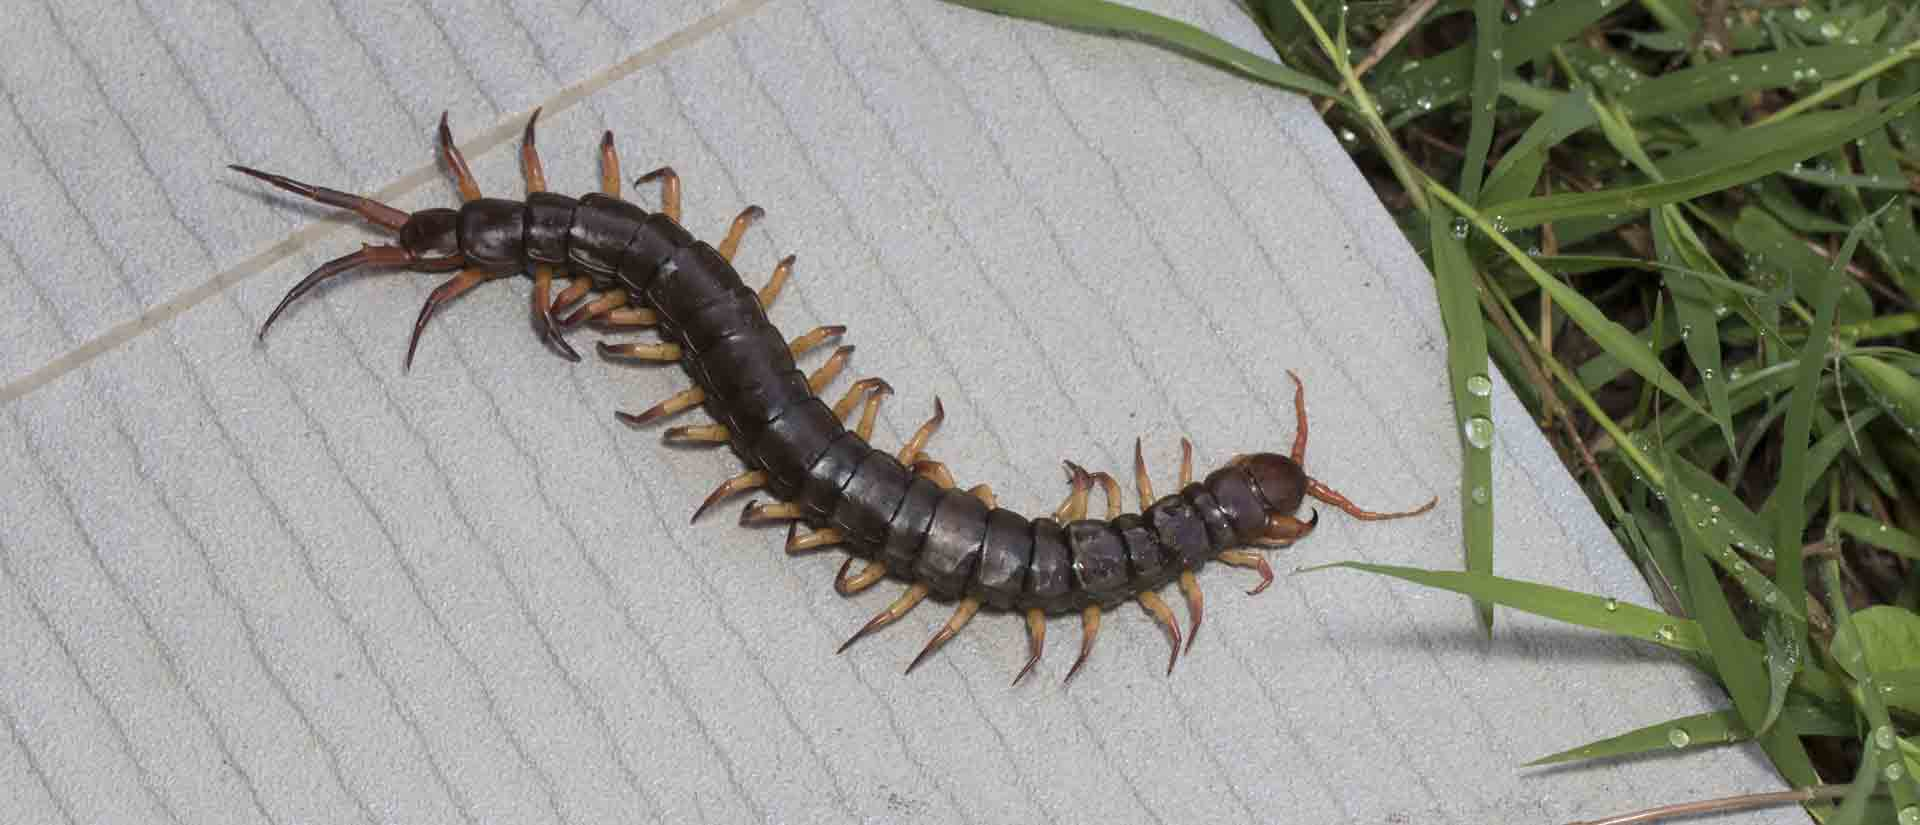 Special Millipedes Centipede Pest Control Crest Crest Pest Control Termite Control Crest License To Kill How To Get Rid My Bathroom How To Get Rid Millipedes Your House houzz-03 How To Get Rid Of Millipedes